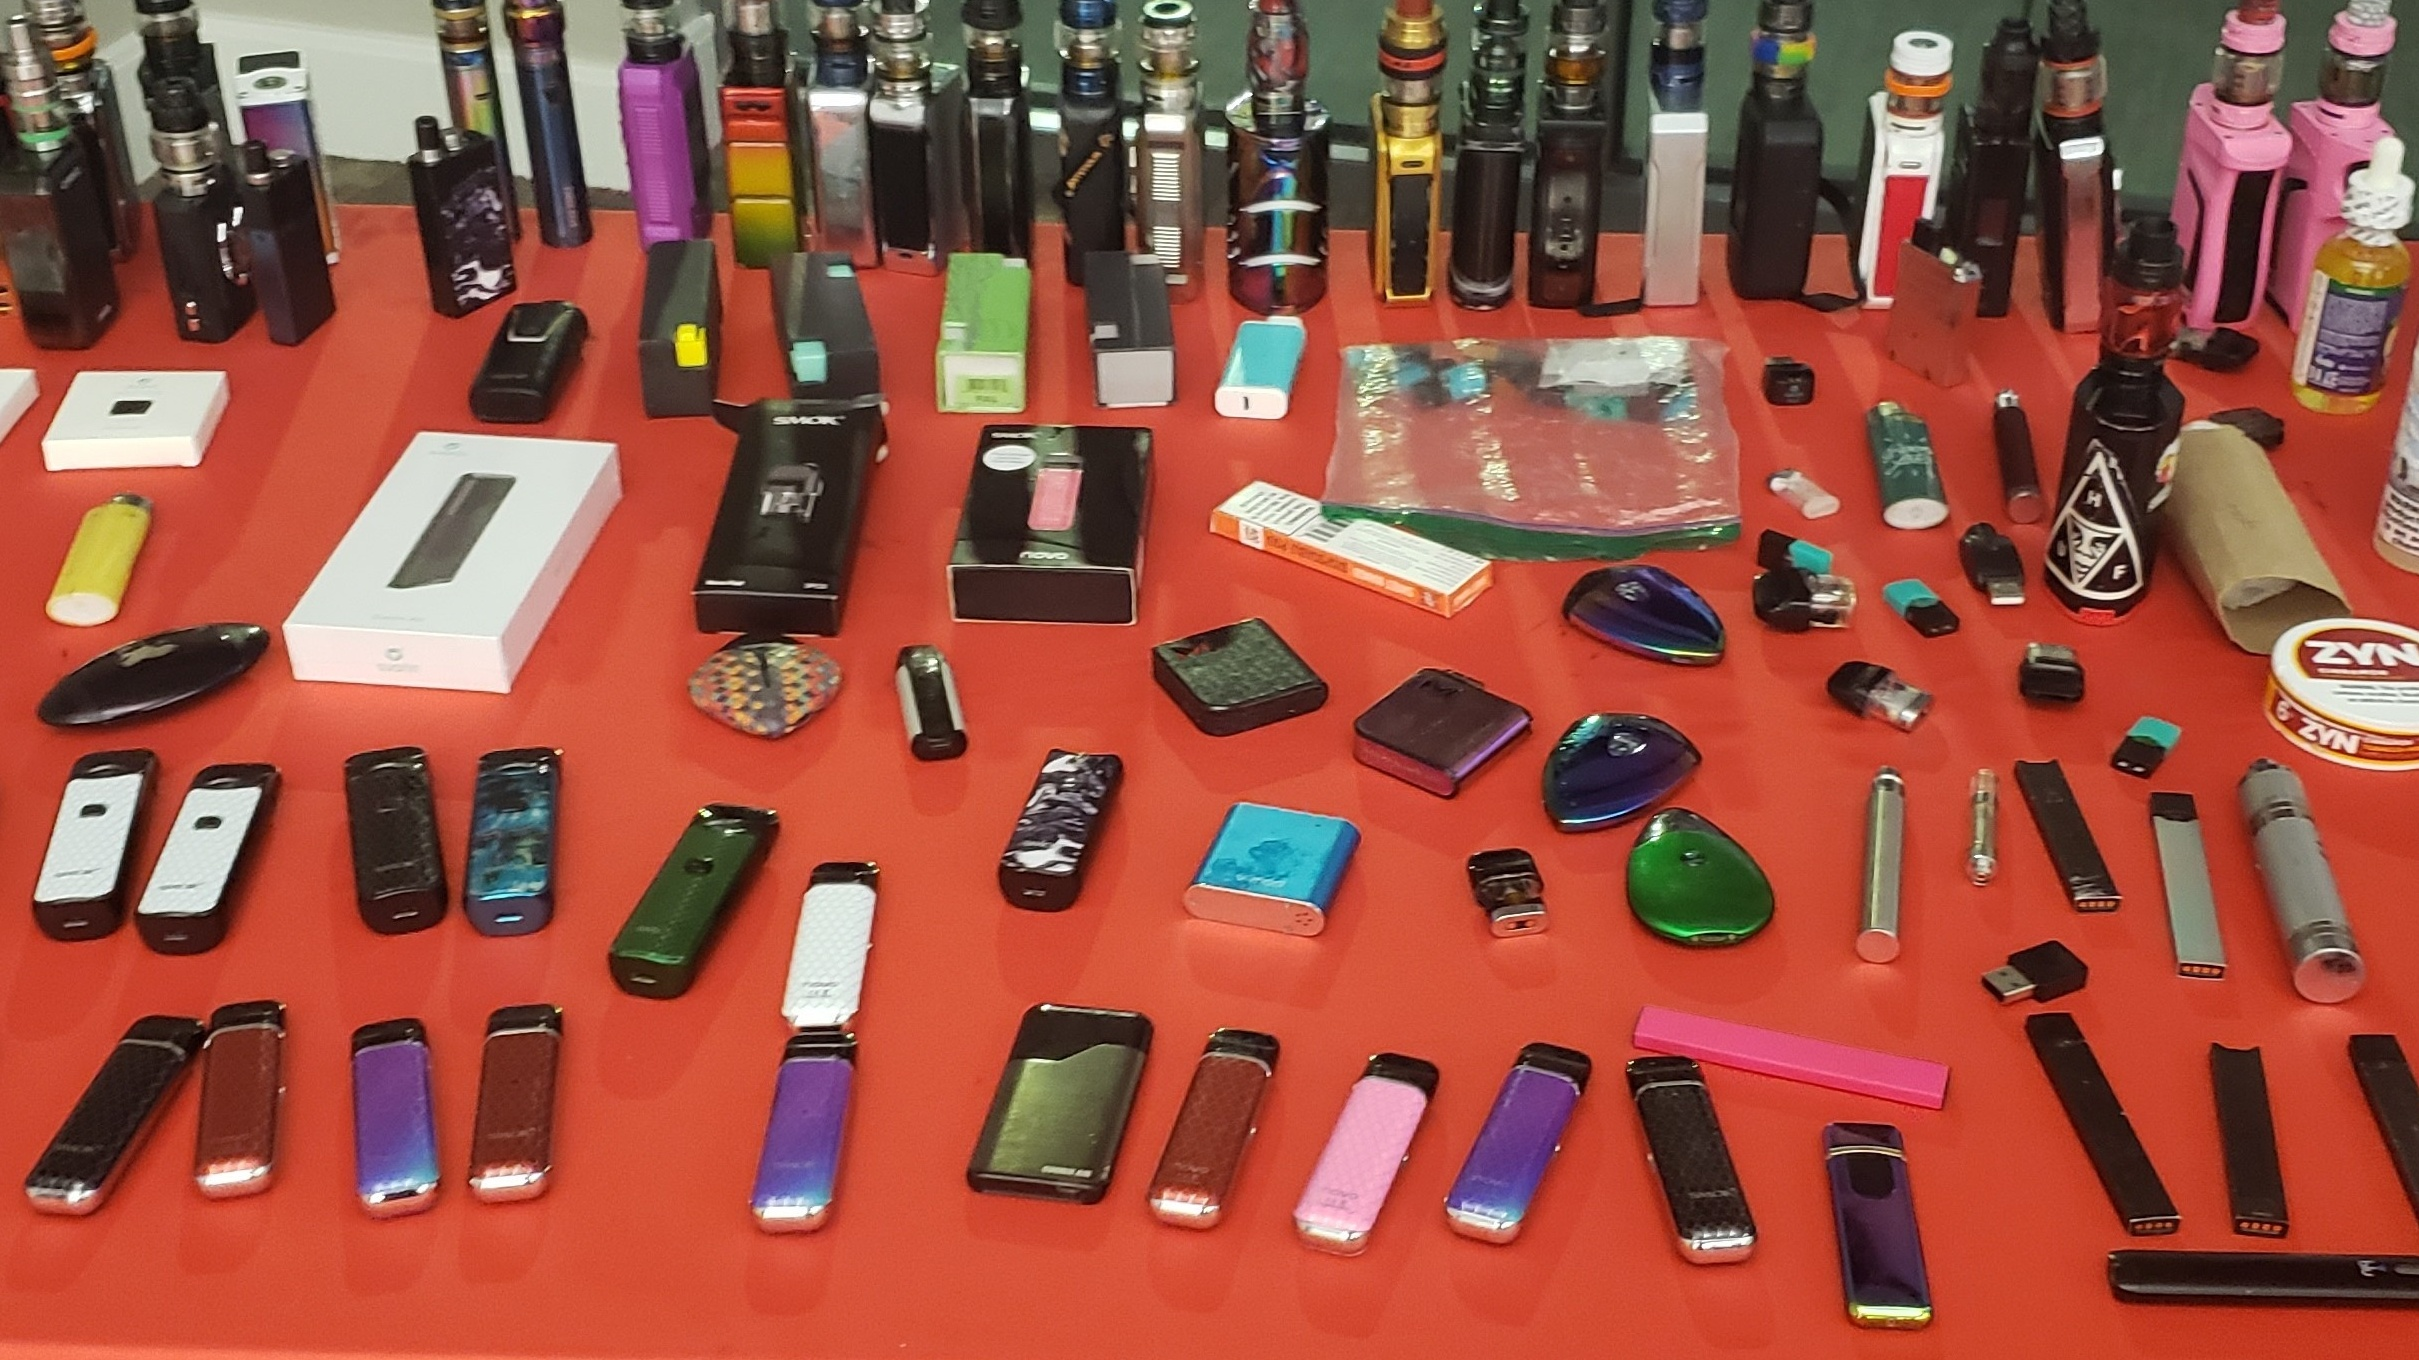 A table with a variety of vape devices confiscated from high school students